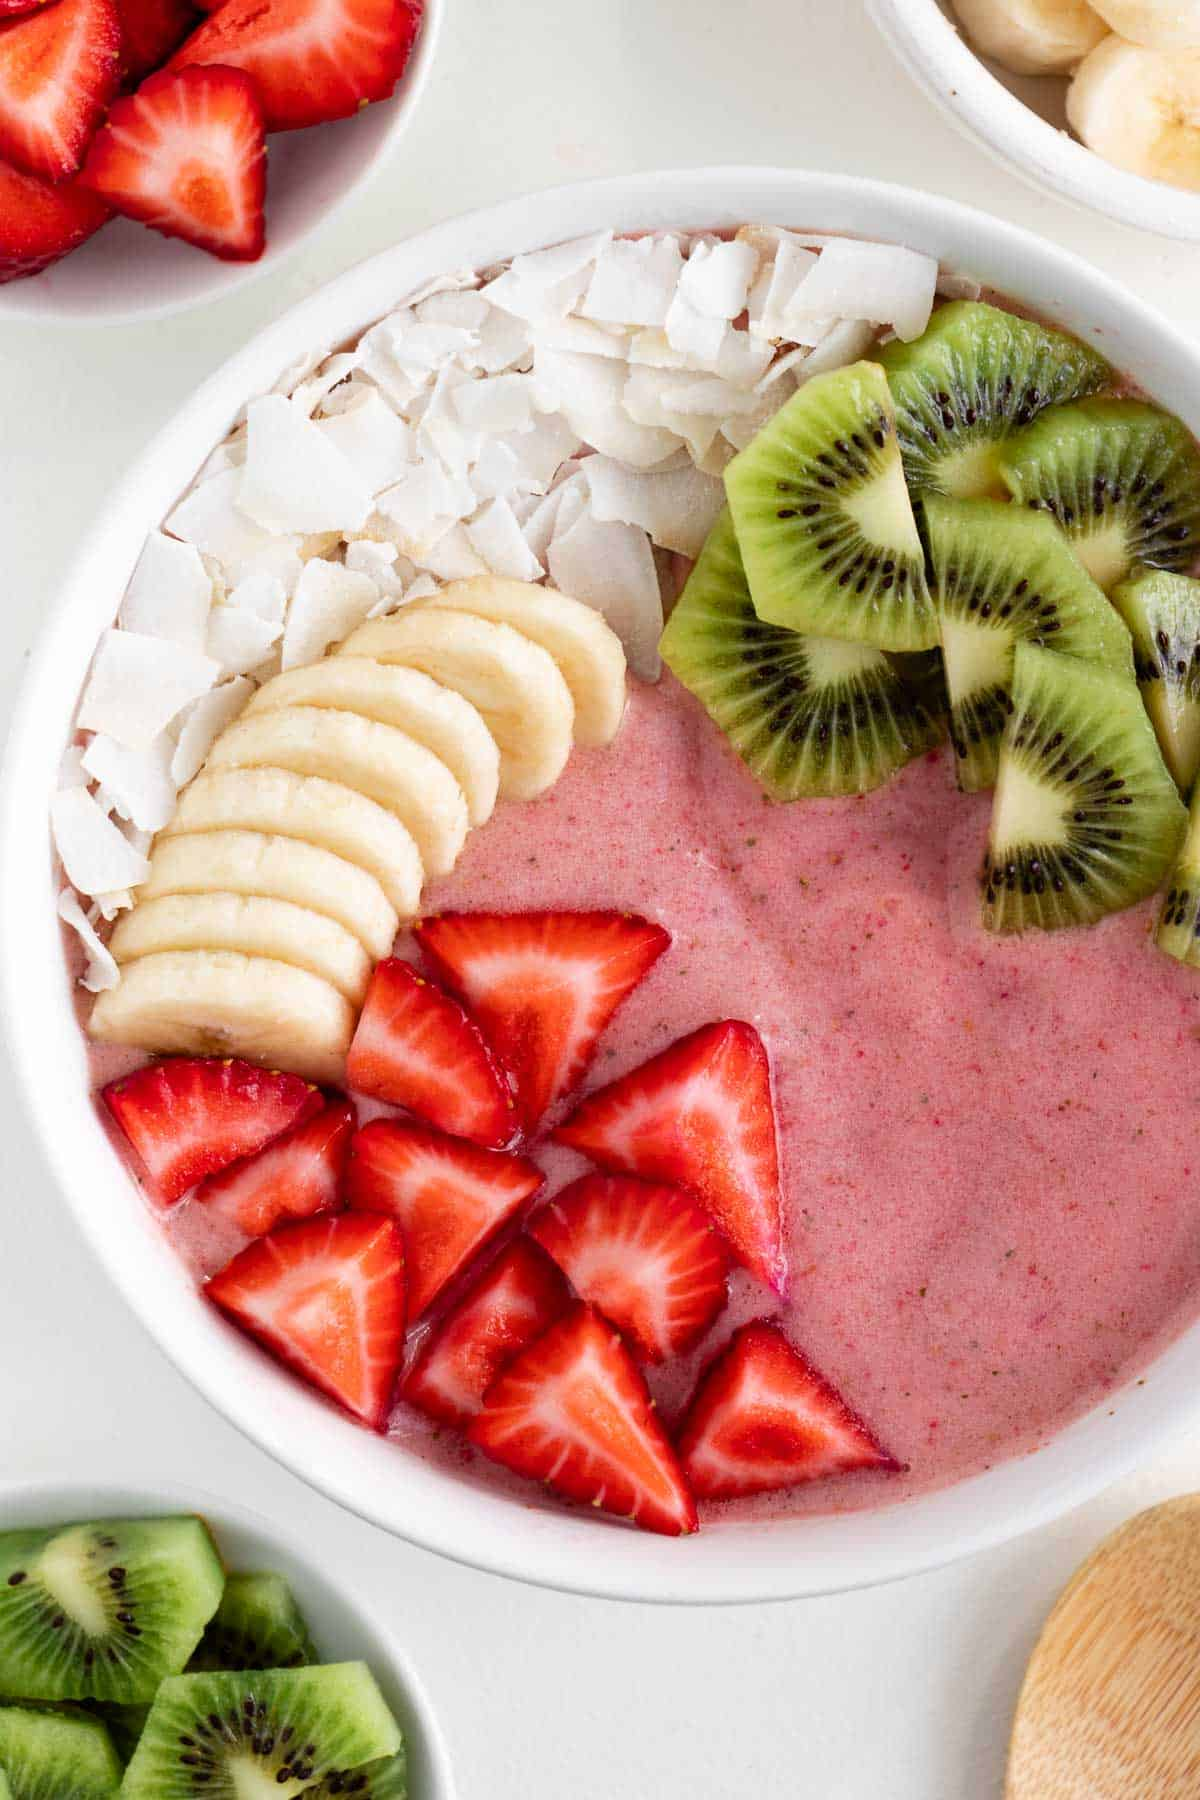 a strawberry smoothie bowl topped with coconut flakes, banana, kiwi fruit, and berries